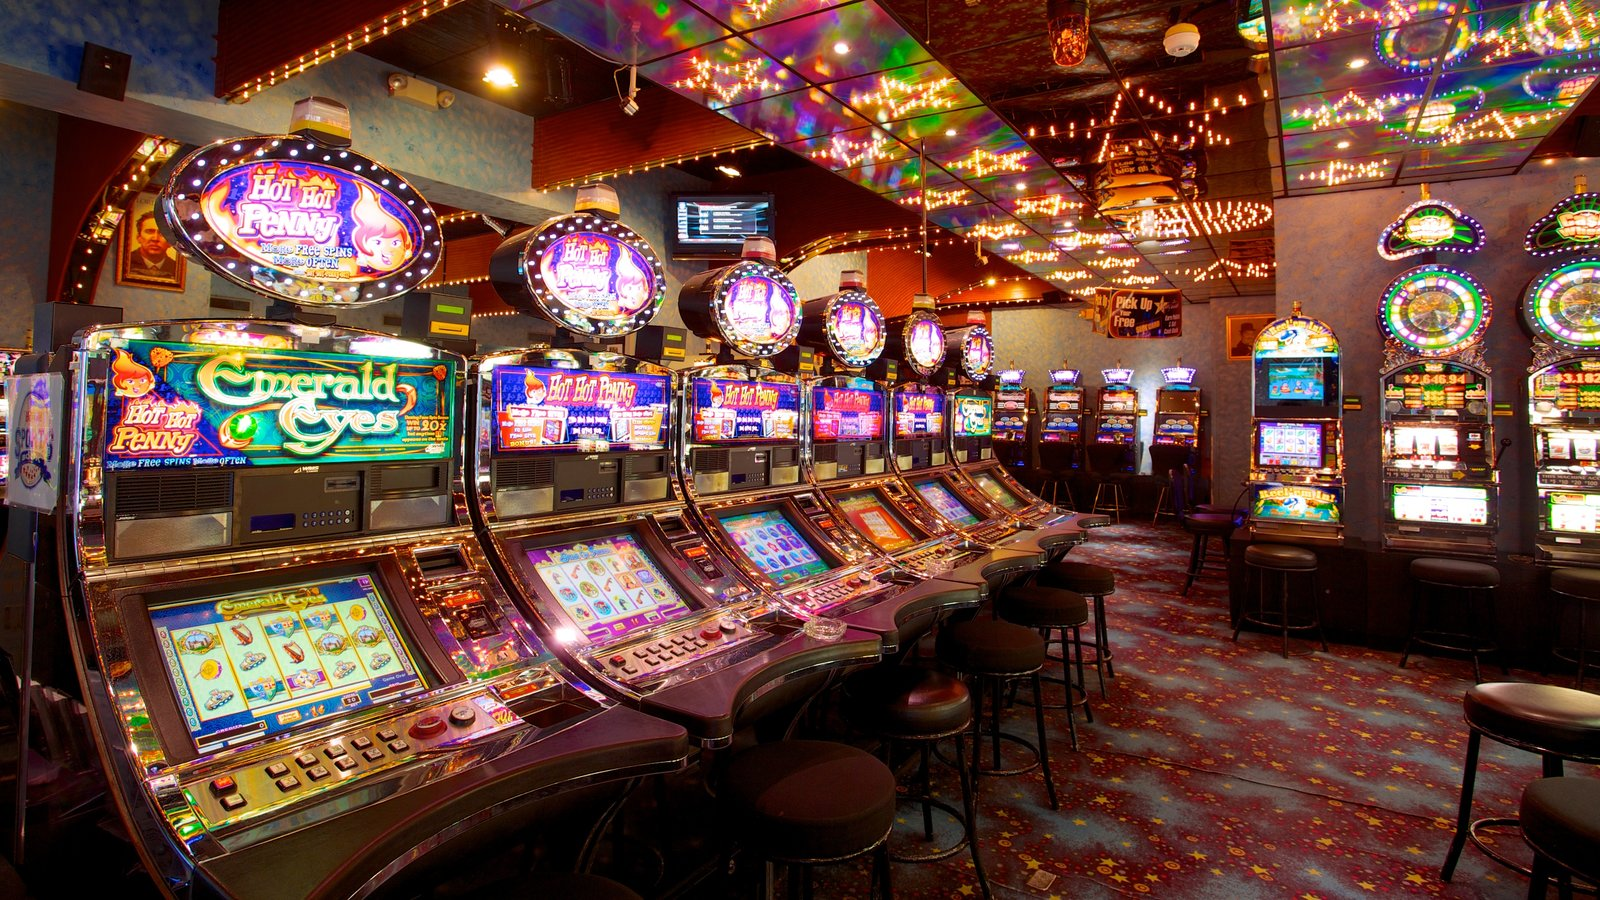 Want to register at the reputable gambling website to have a great gambling experience